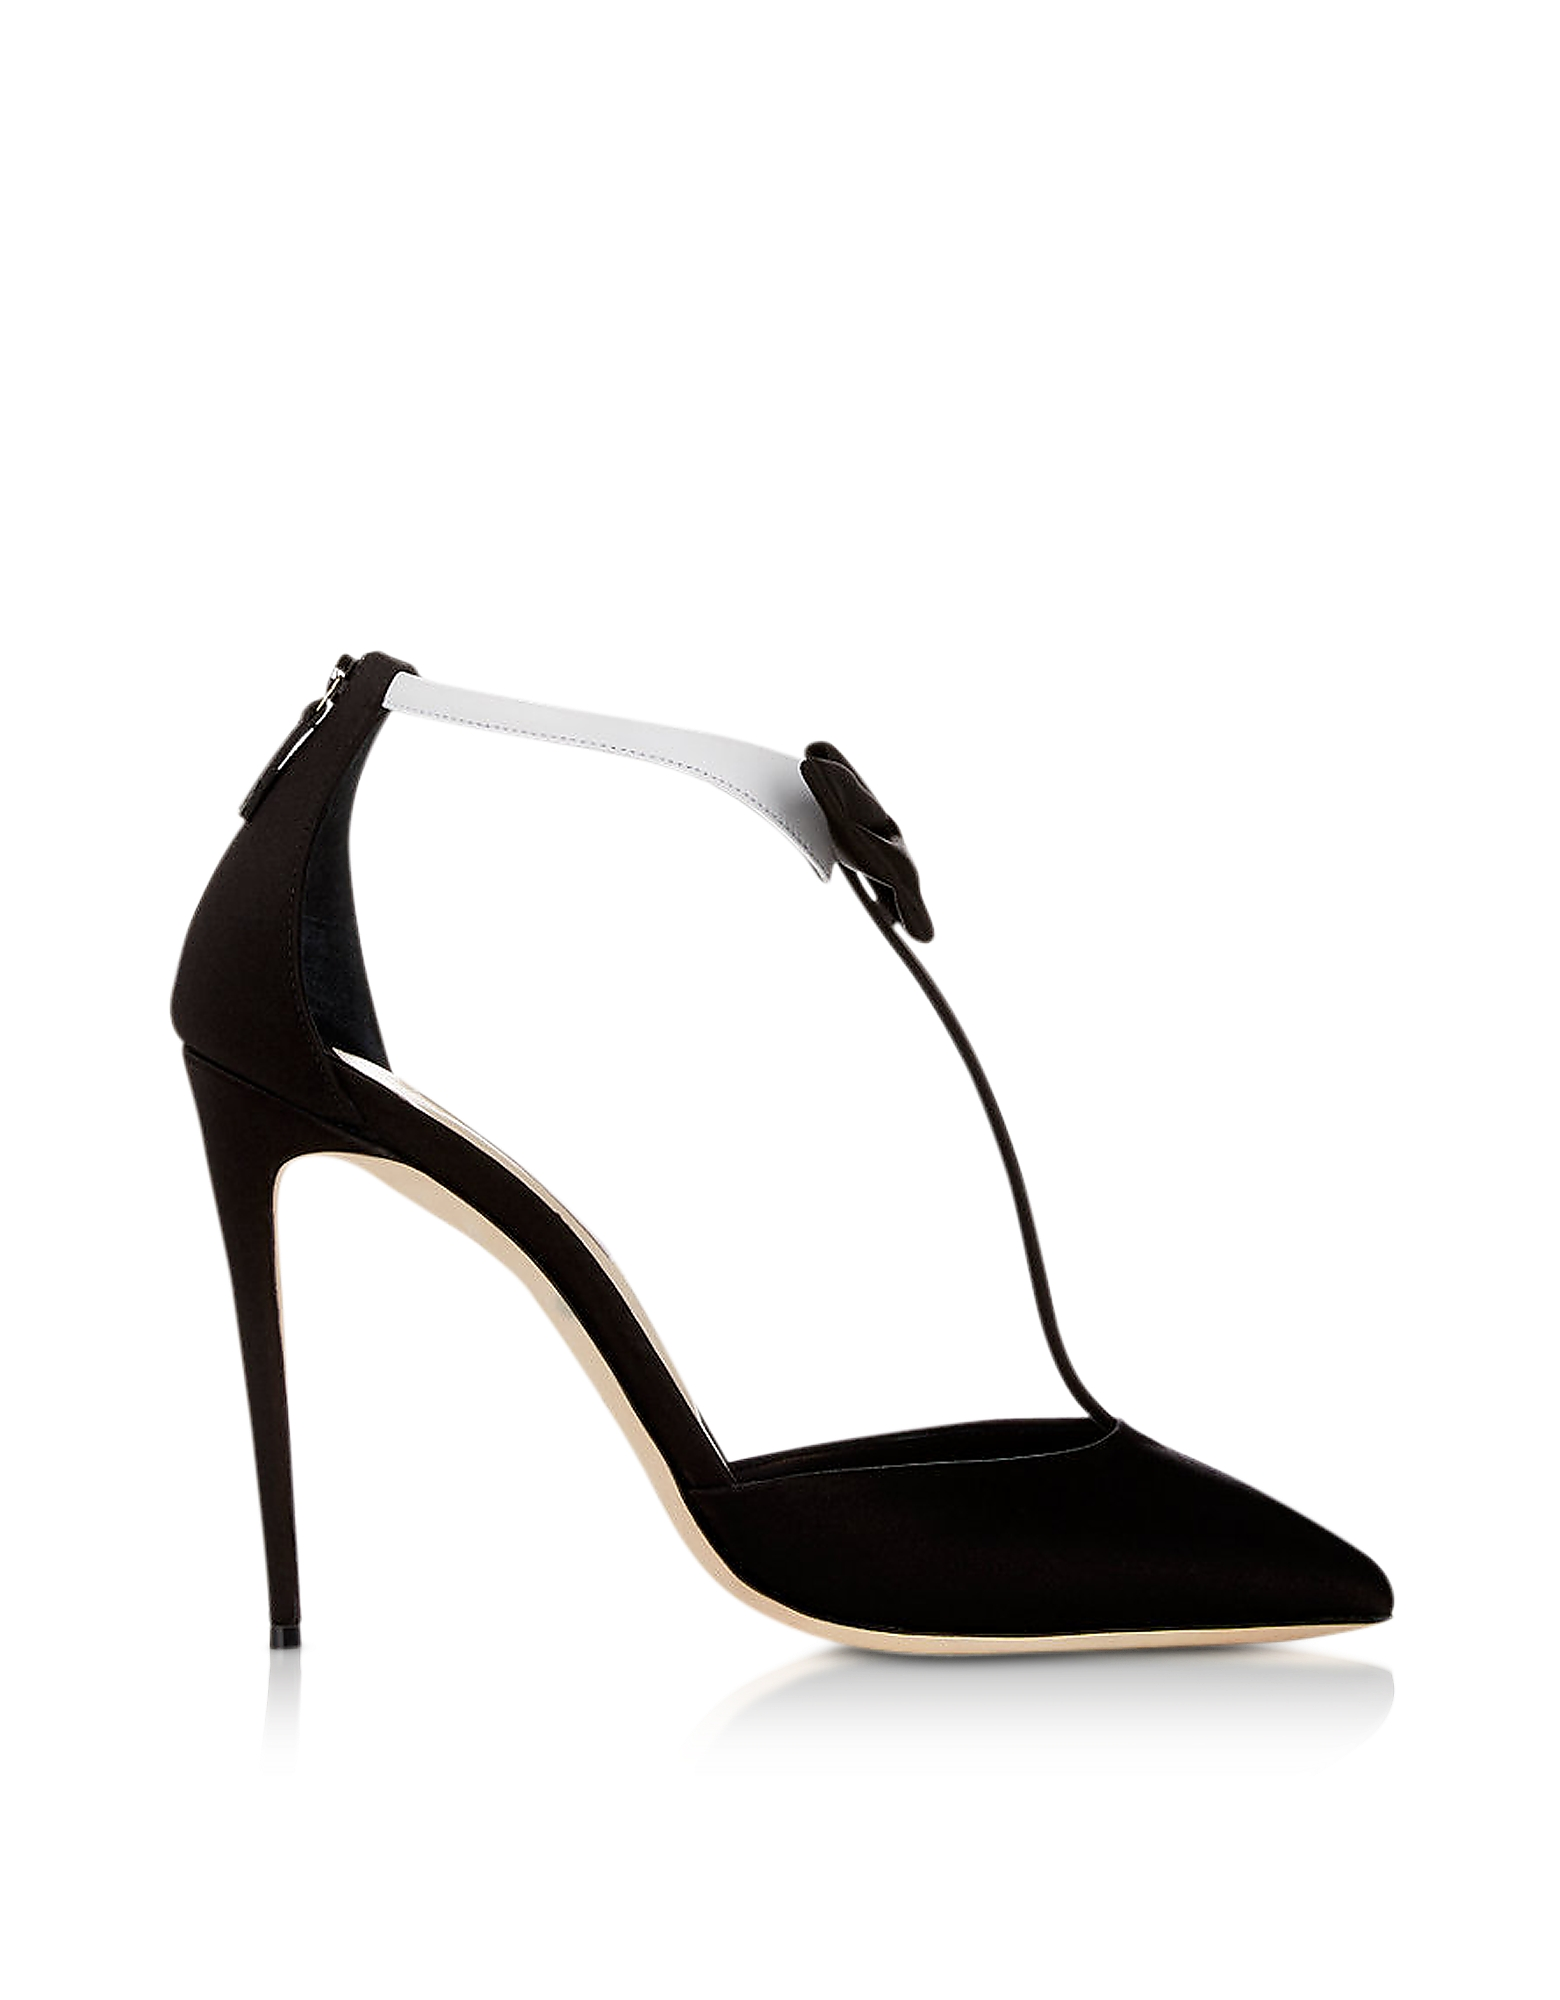 Olgana Paris Shoes, La Garconne Black Satin T-Strap Pump